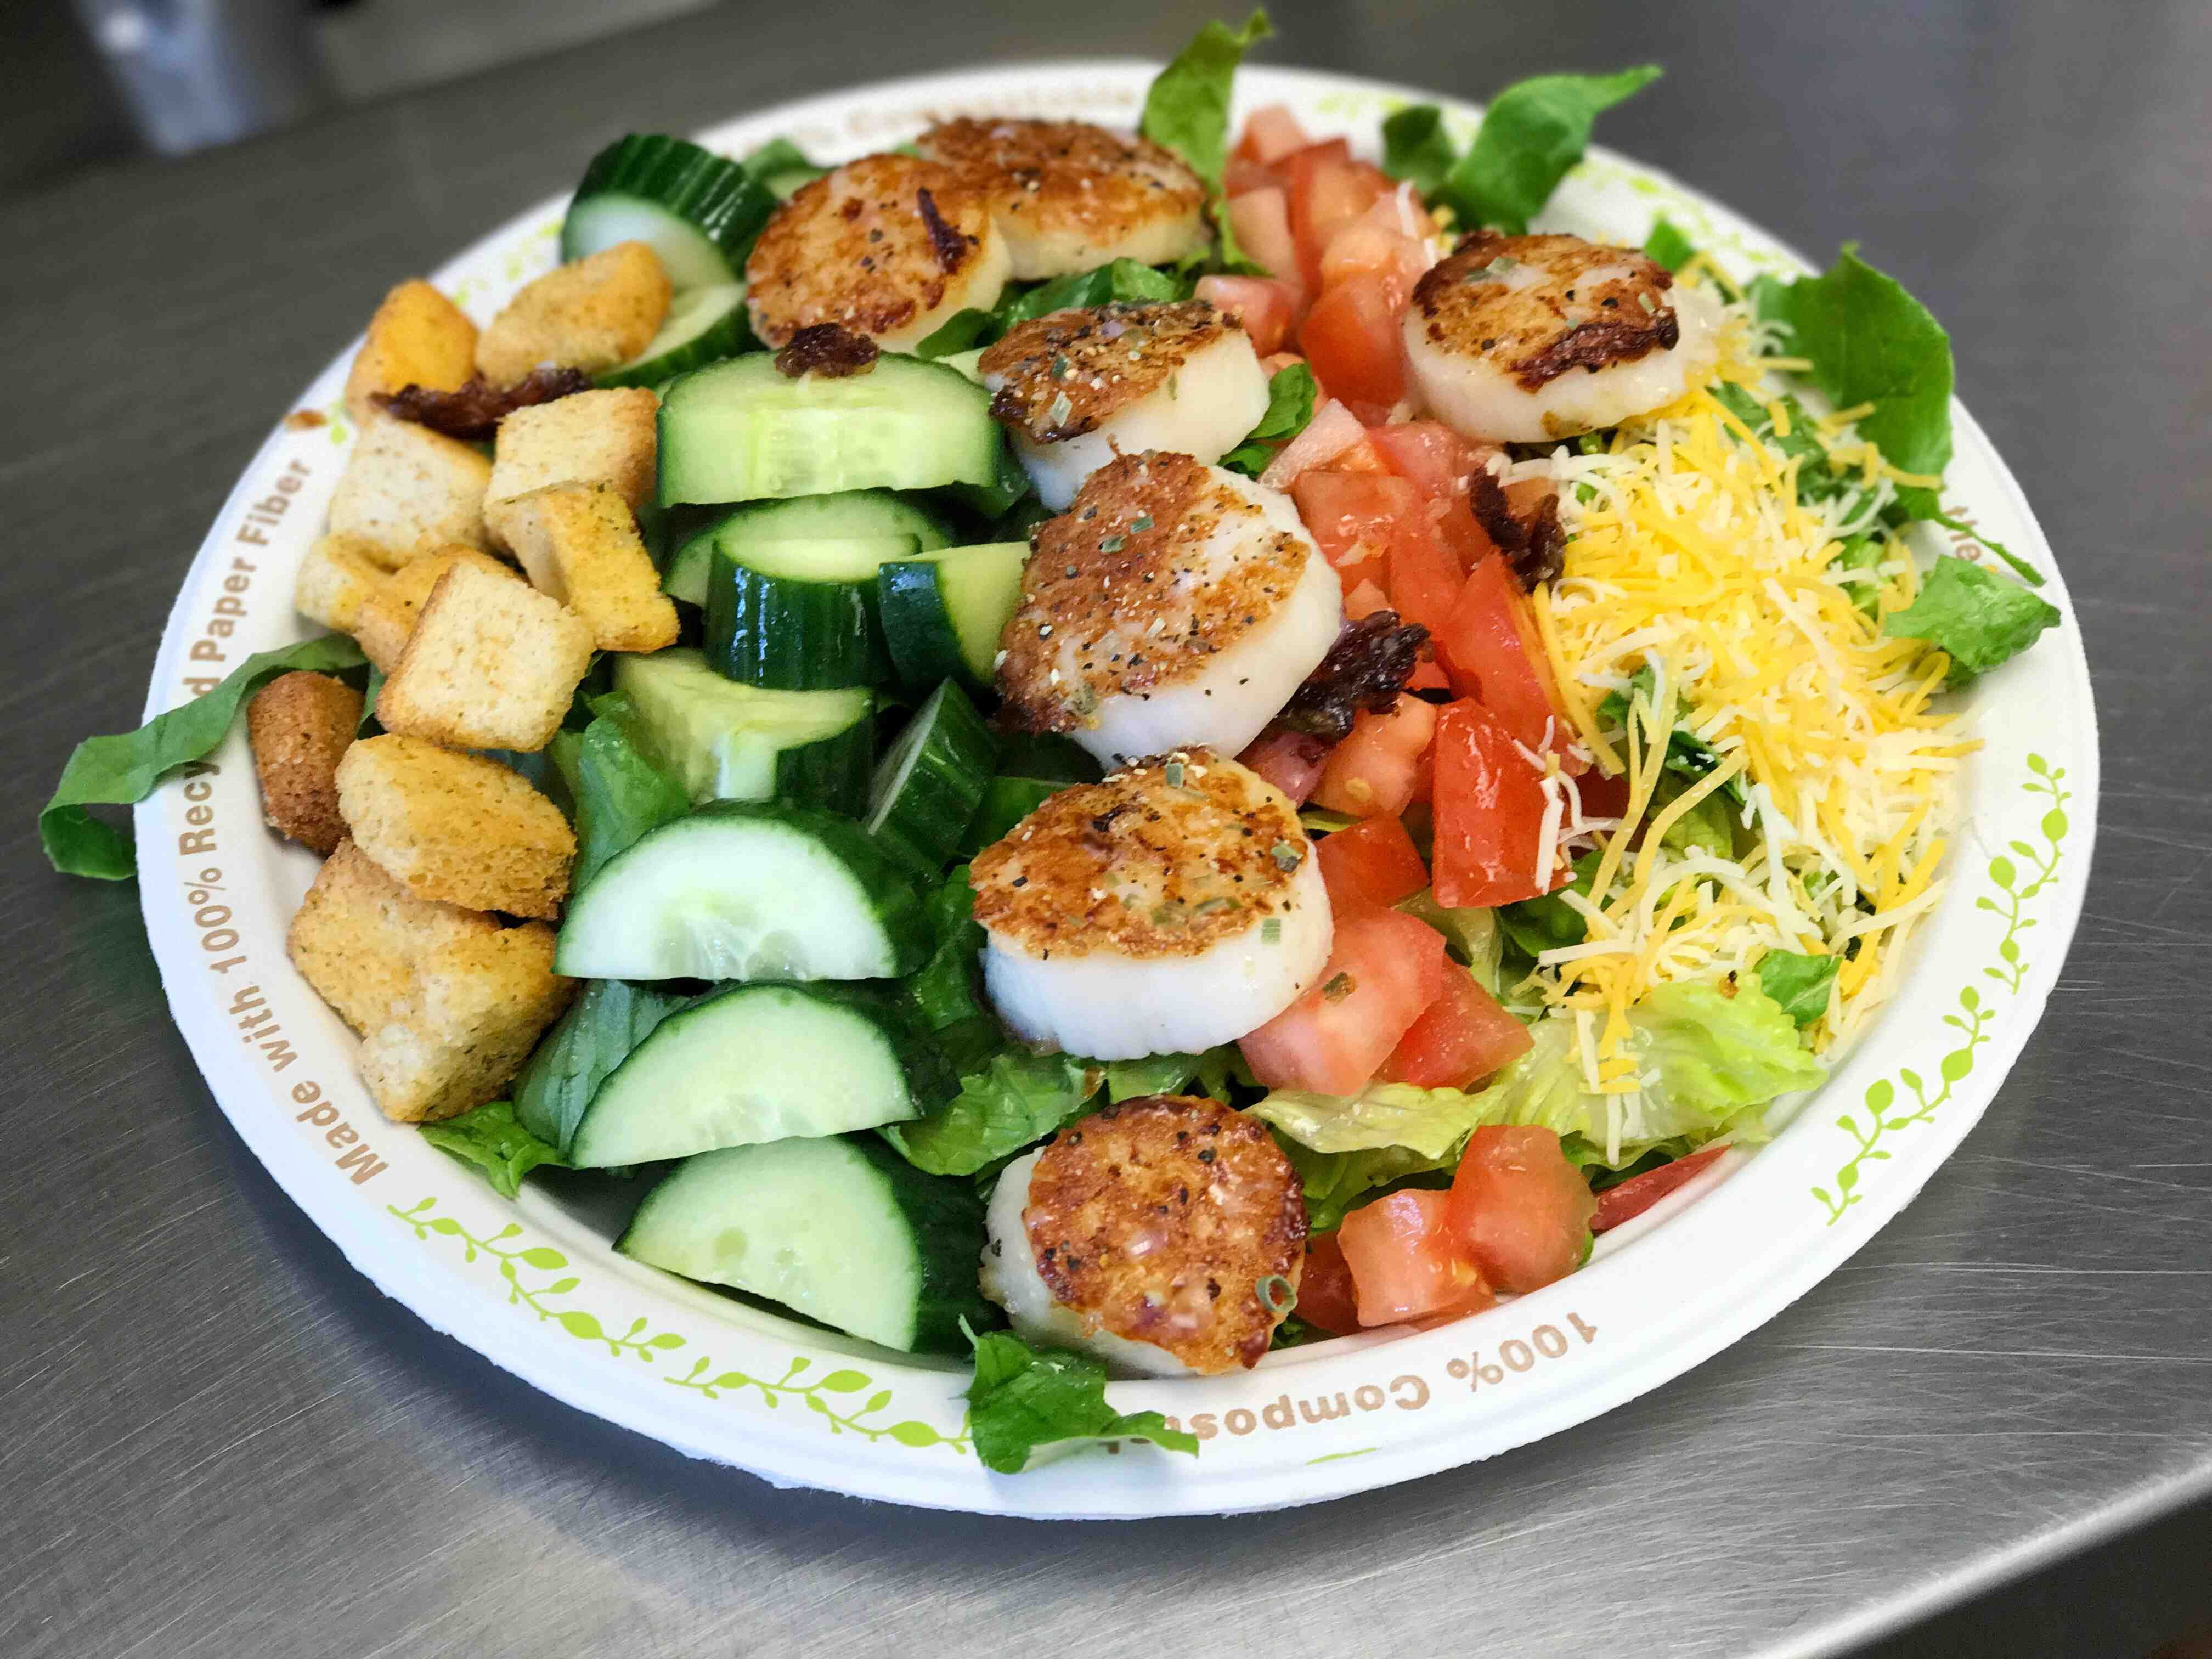 Garden Scallop Salad from The Beach Plum in Epping, NH.